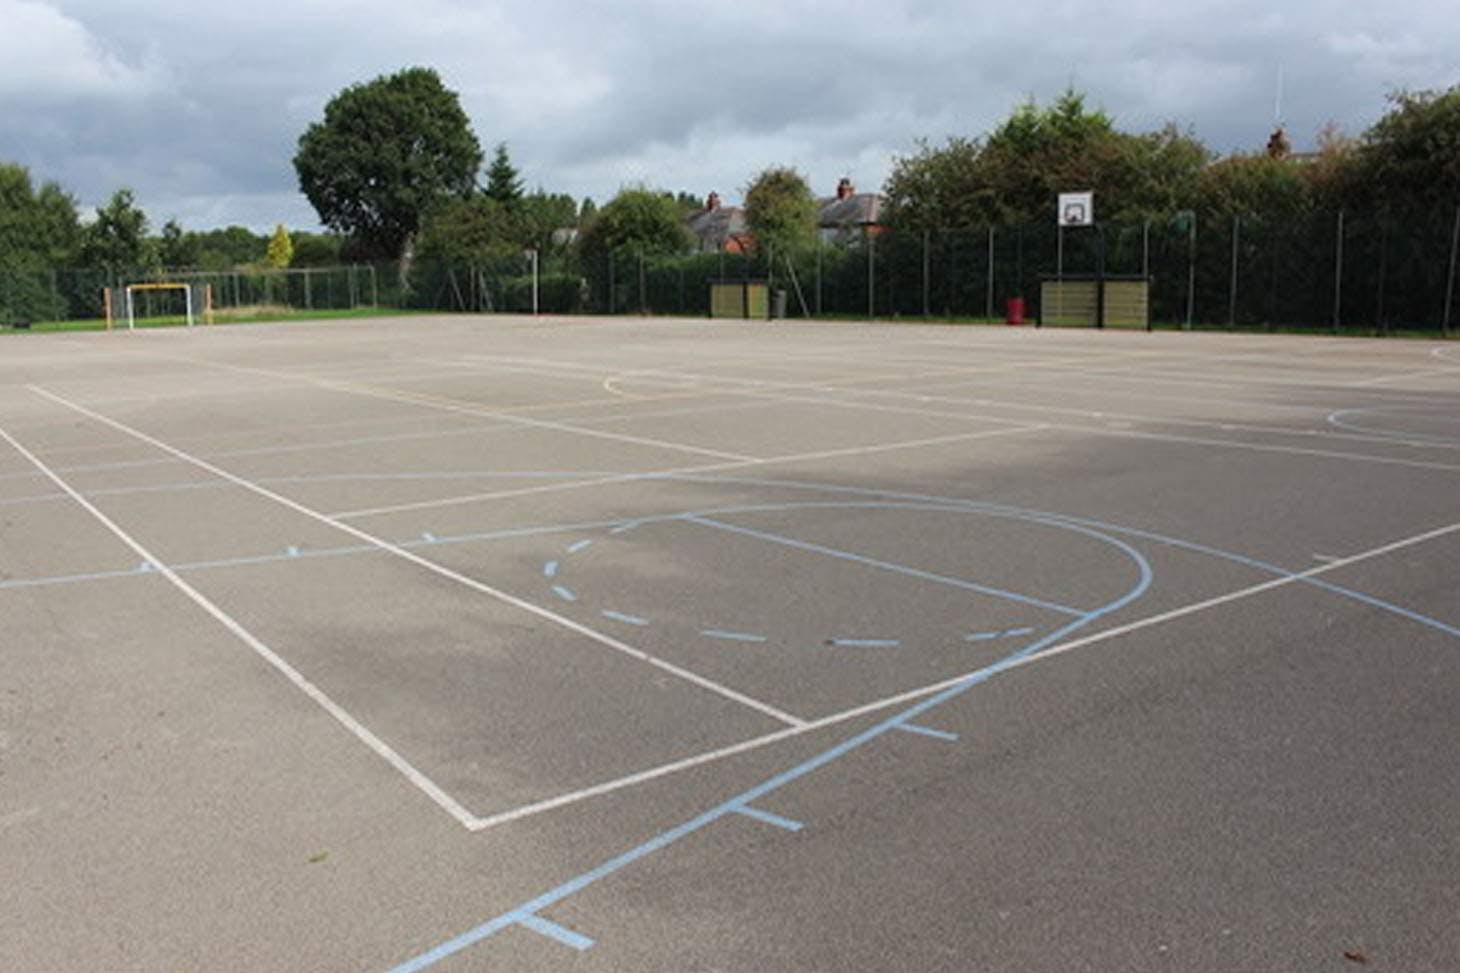 Ashton Community Science College Outdoor | Hard (macadam) tennis court